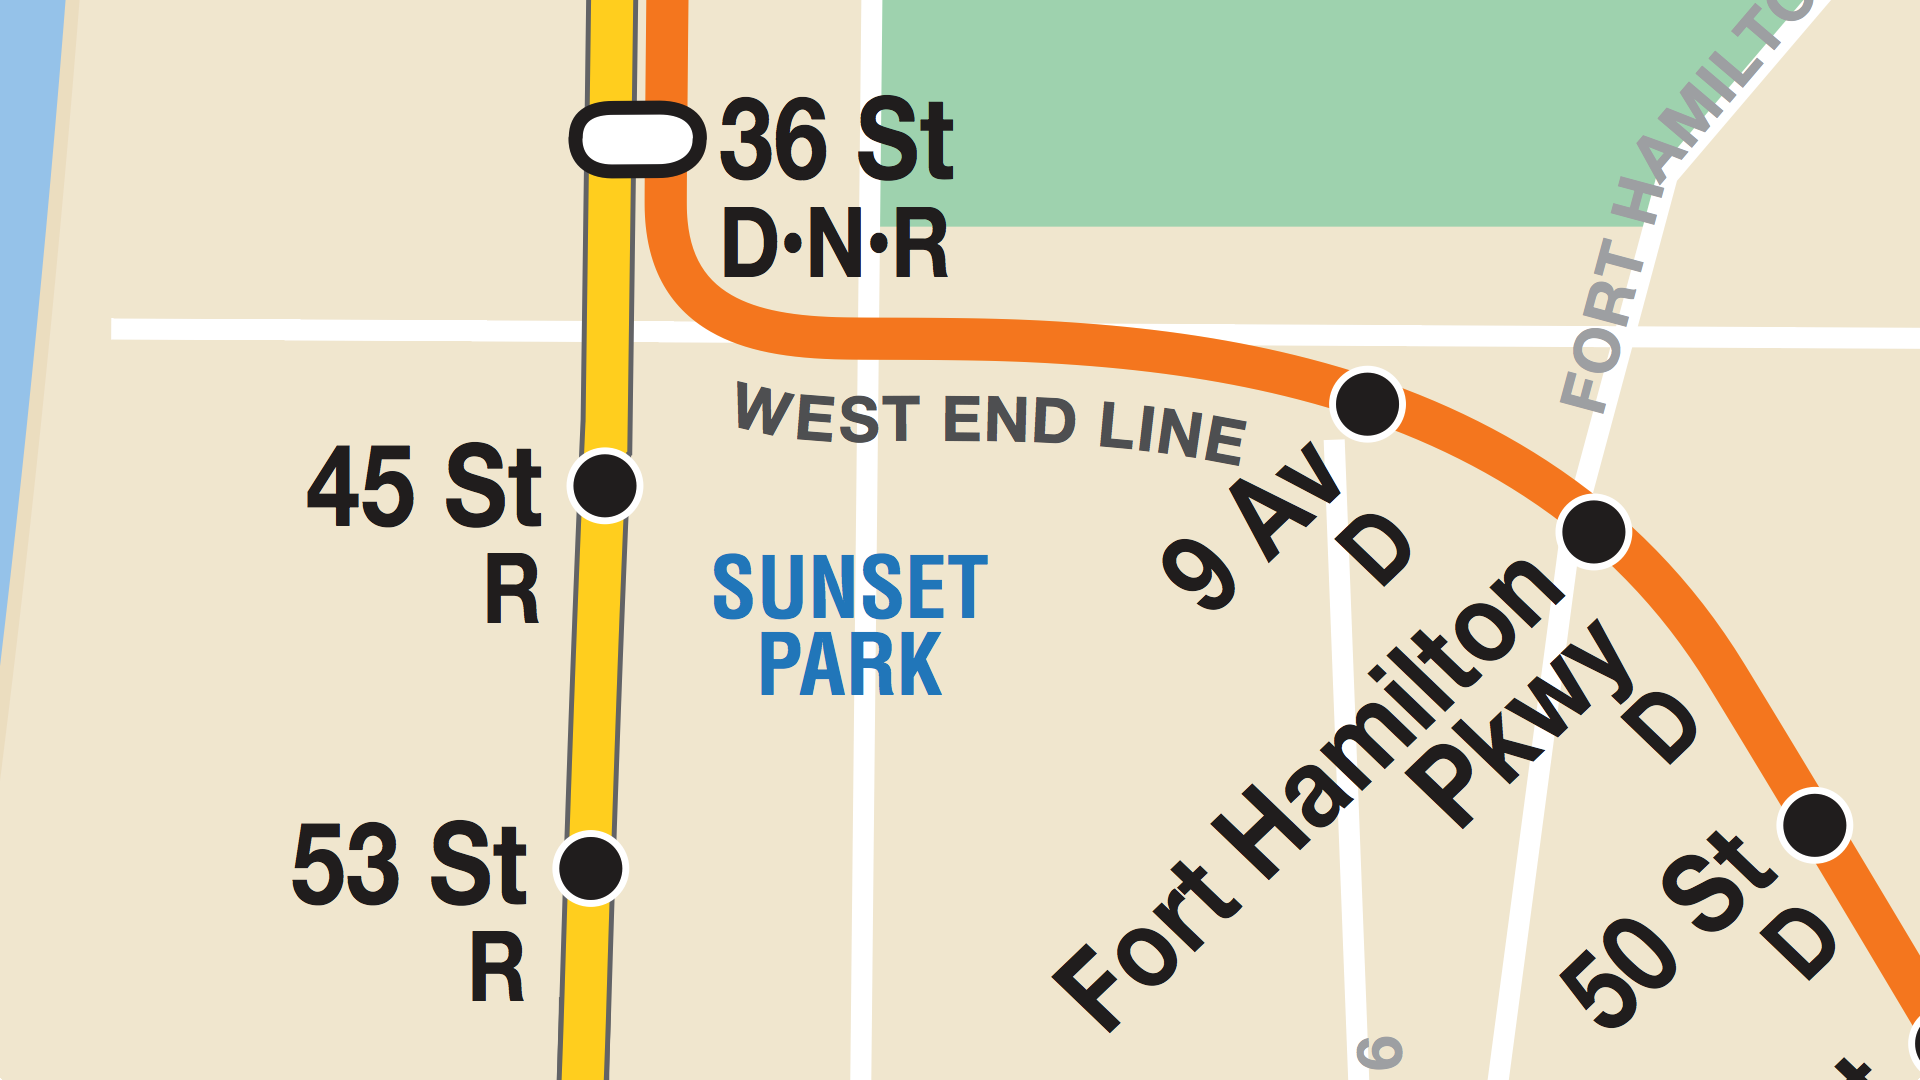 Sunset Park, as imagined by the NYC Subway Map. Missing: Sunset Park itself